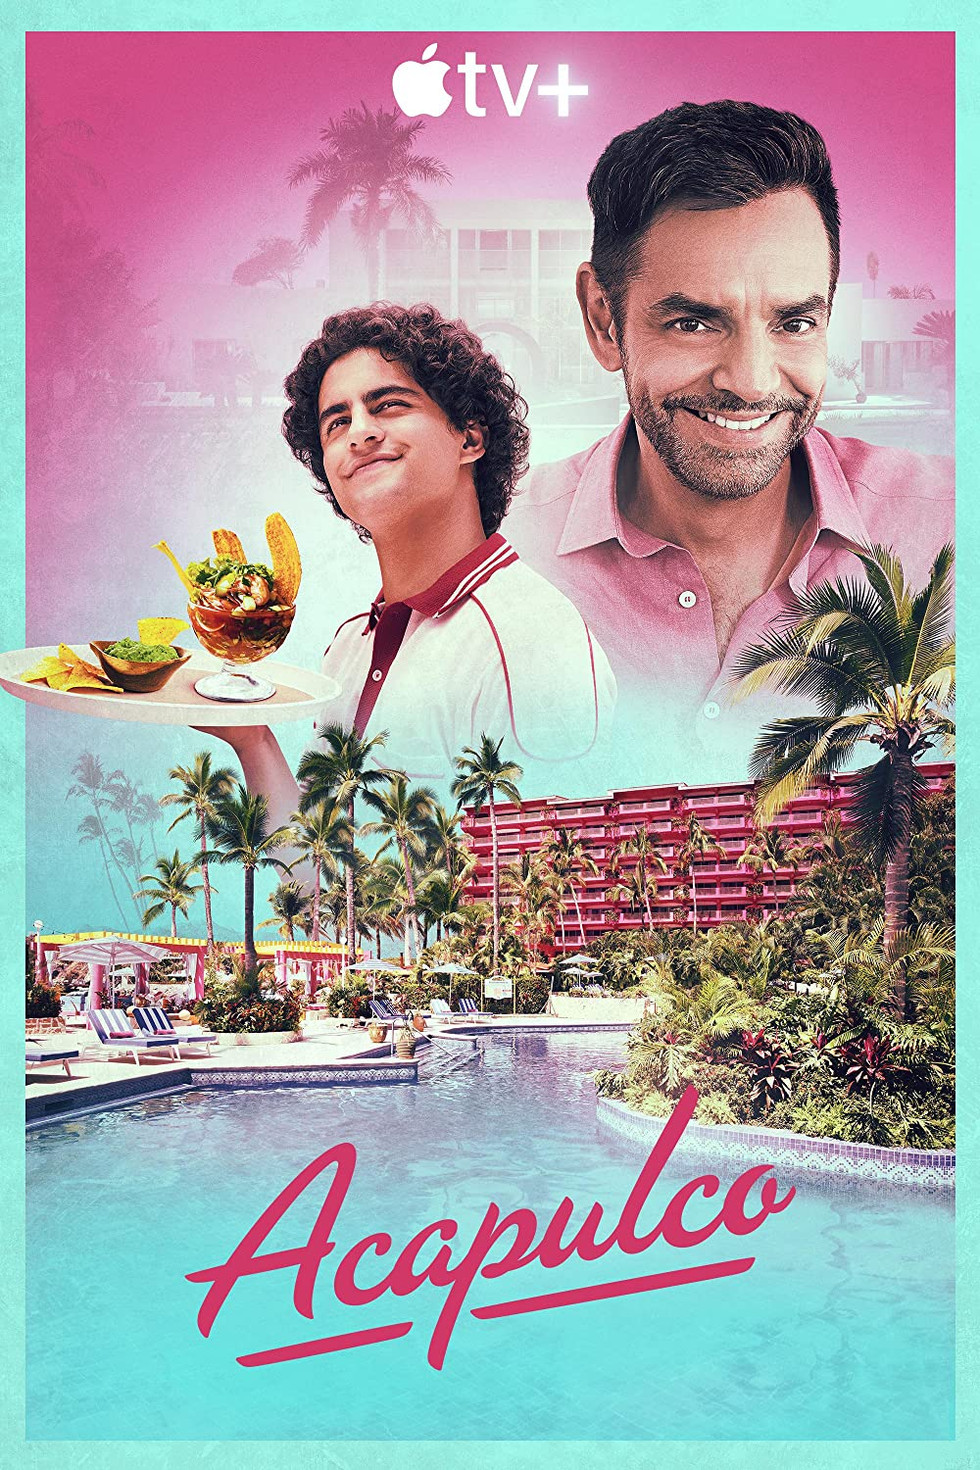 Acapulco_Season_1_2021_on_Apple_TV_Release_Date_Trailer_Starring_and_more.jpg